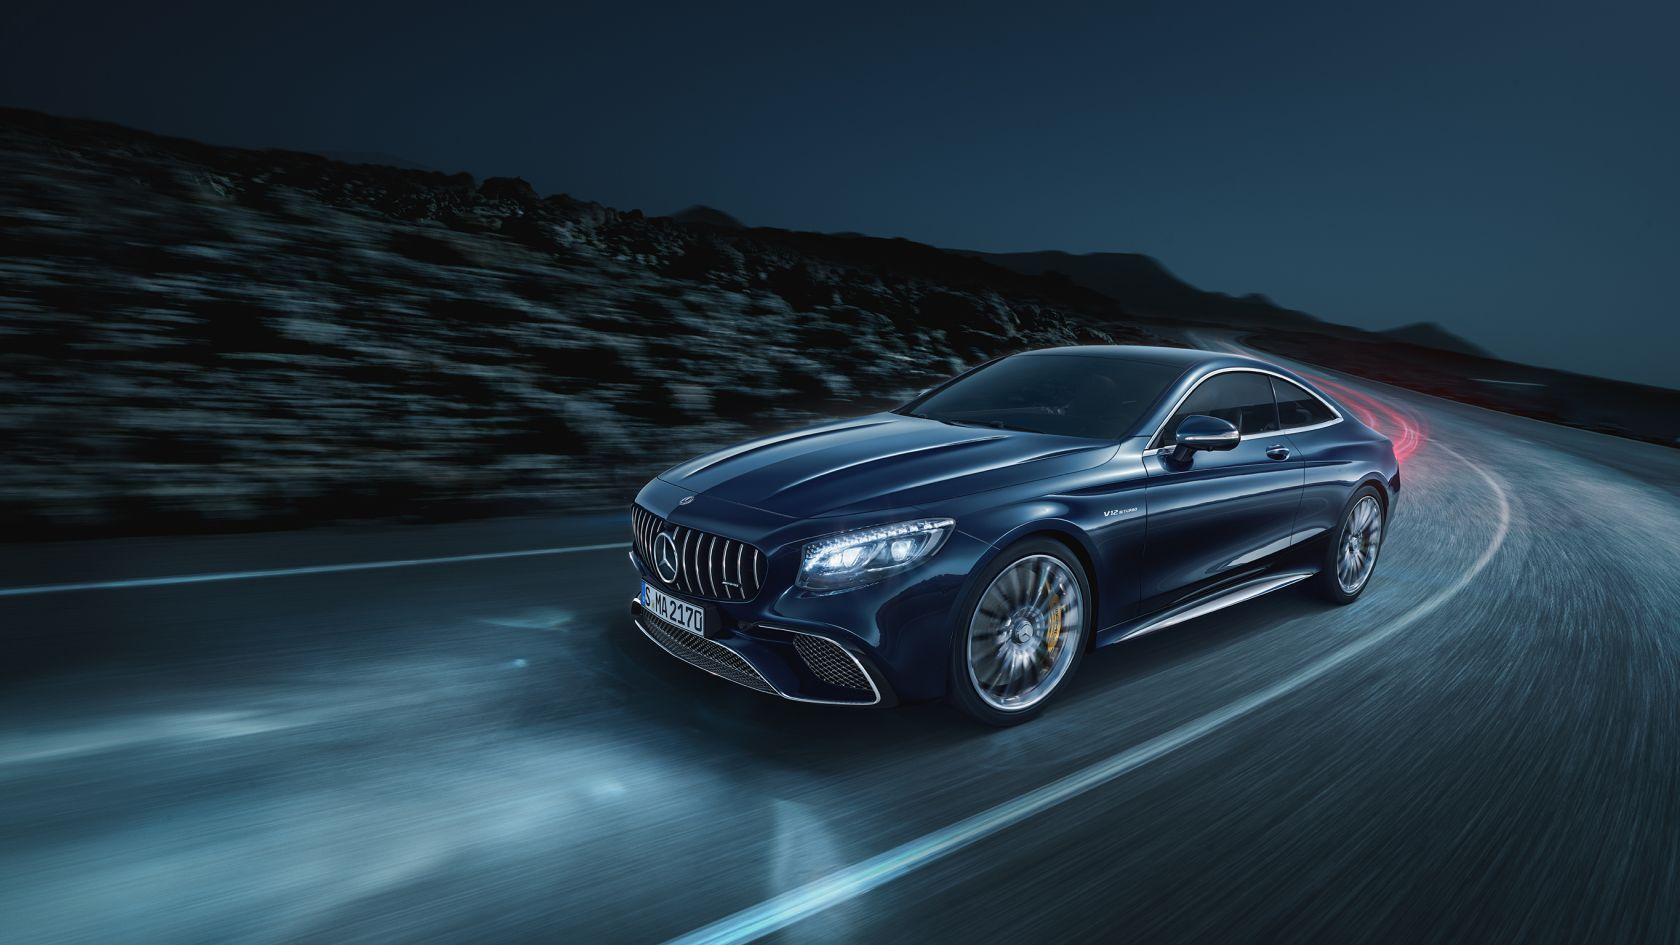 Mercedes Benz Classe S Coupe Inspiracao